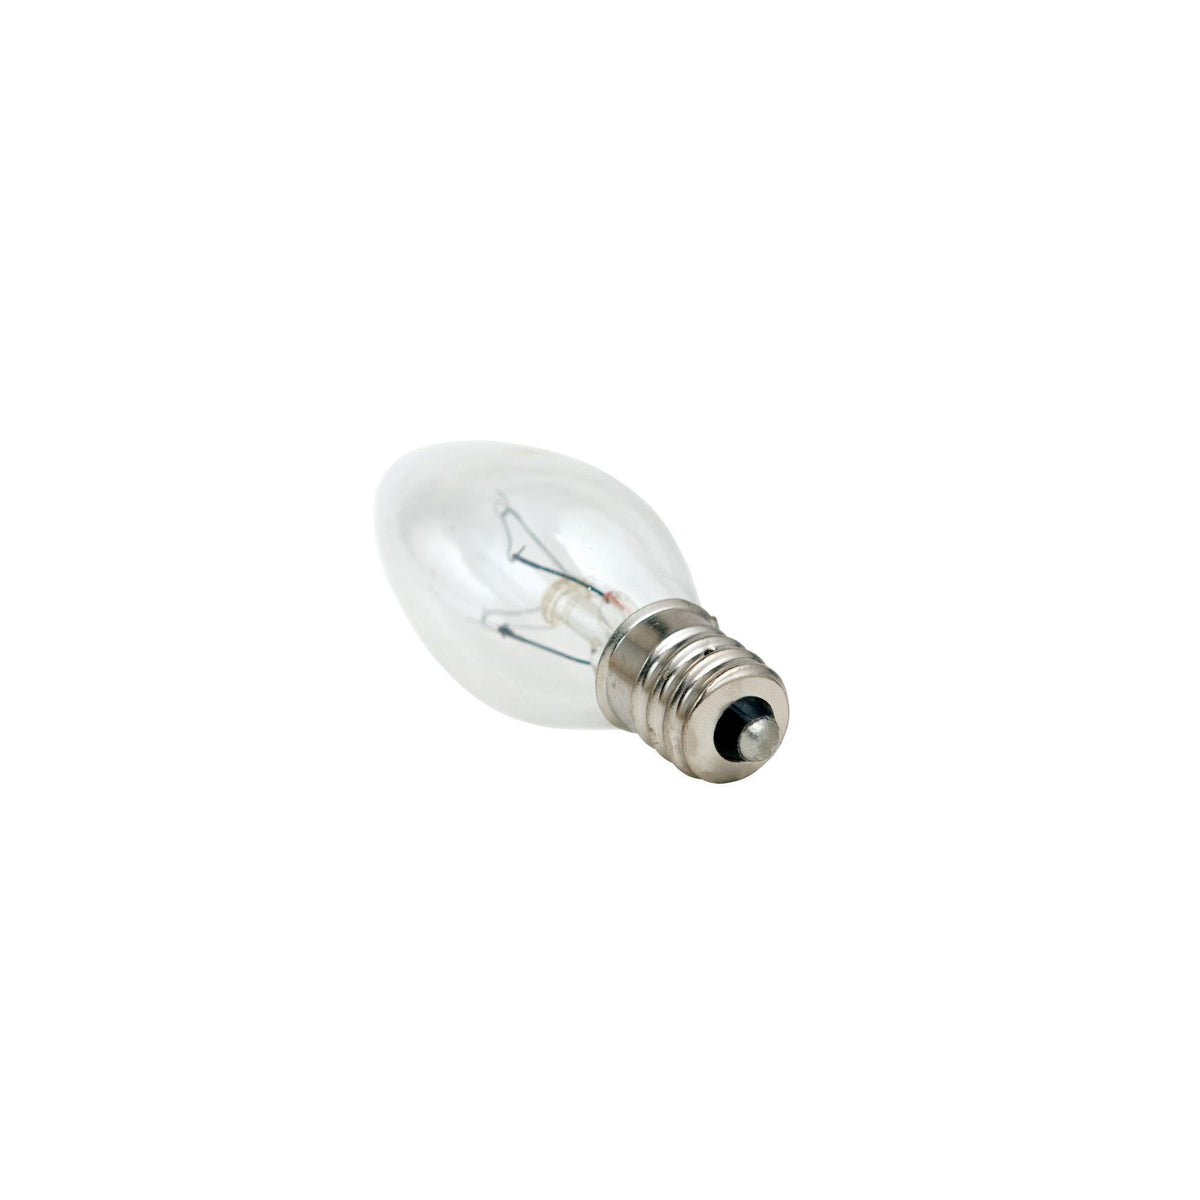 Salt Lamp Replacement Bulb, 15W